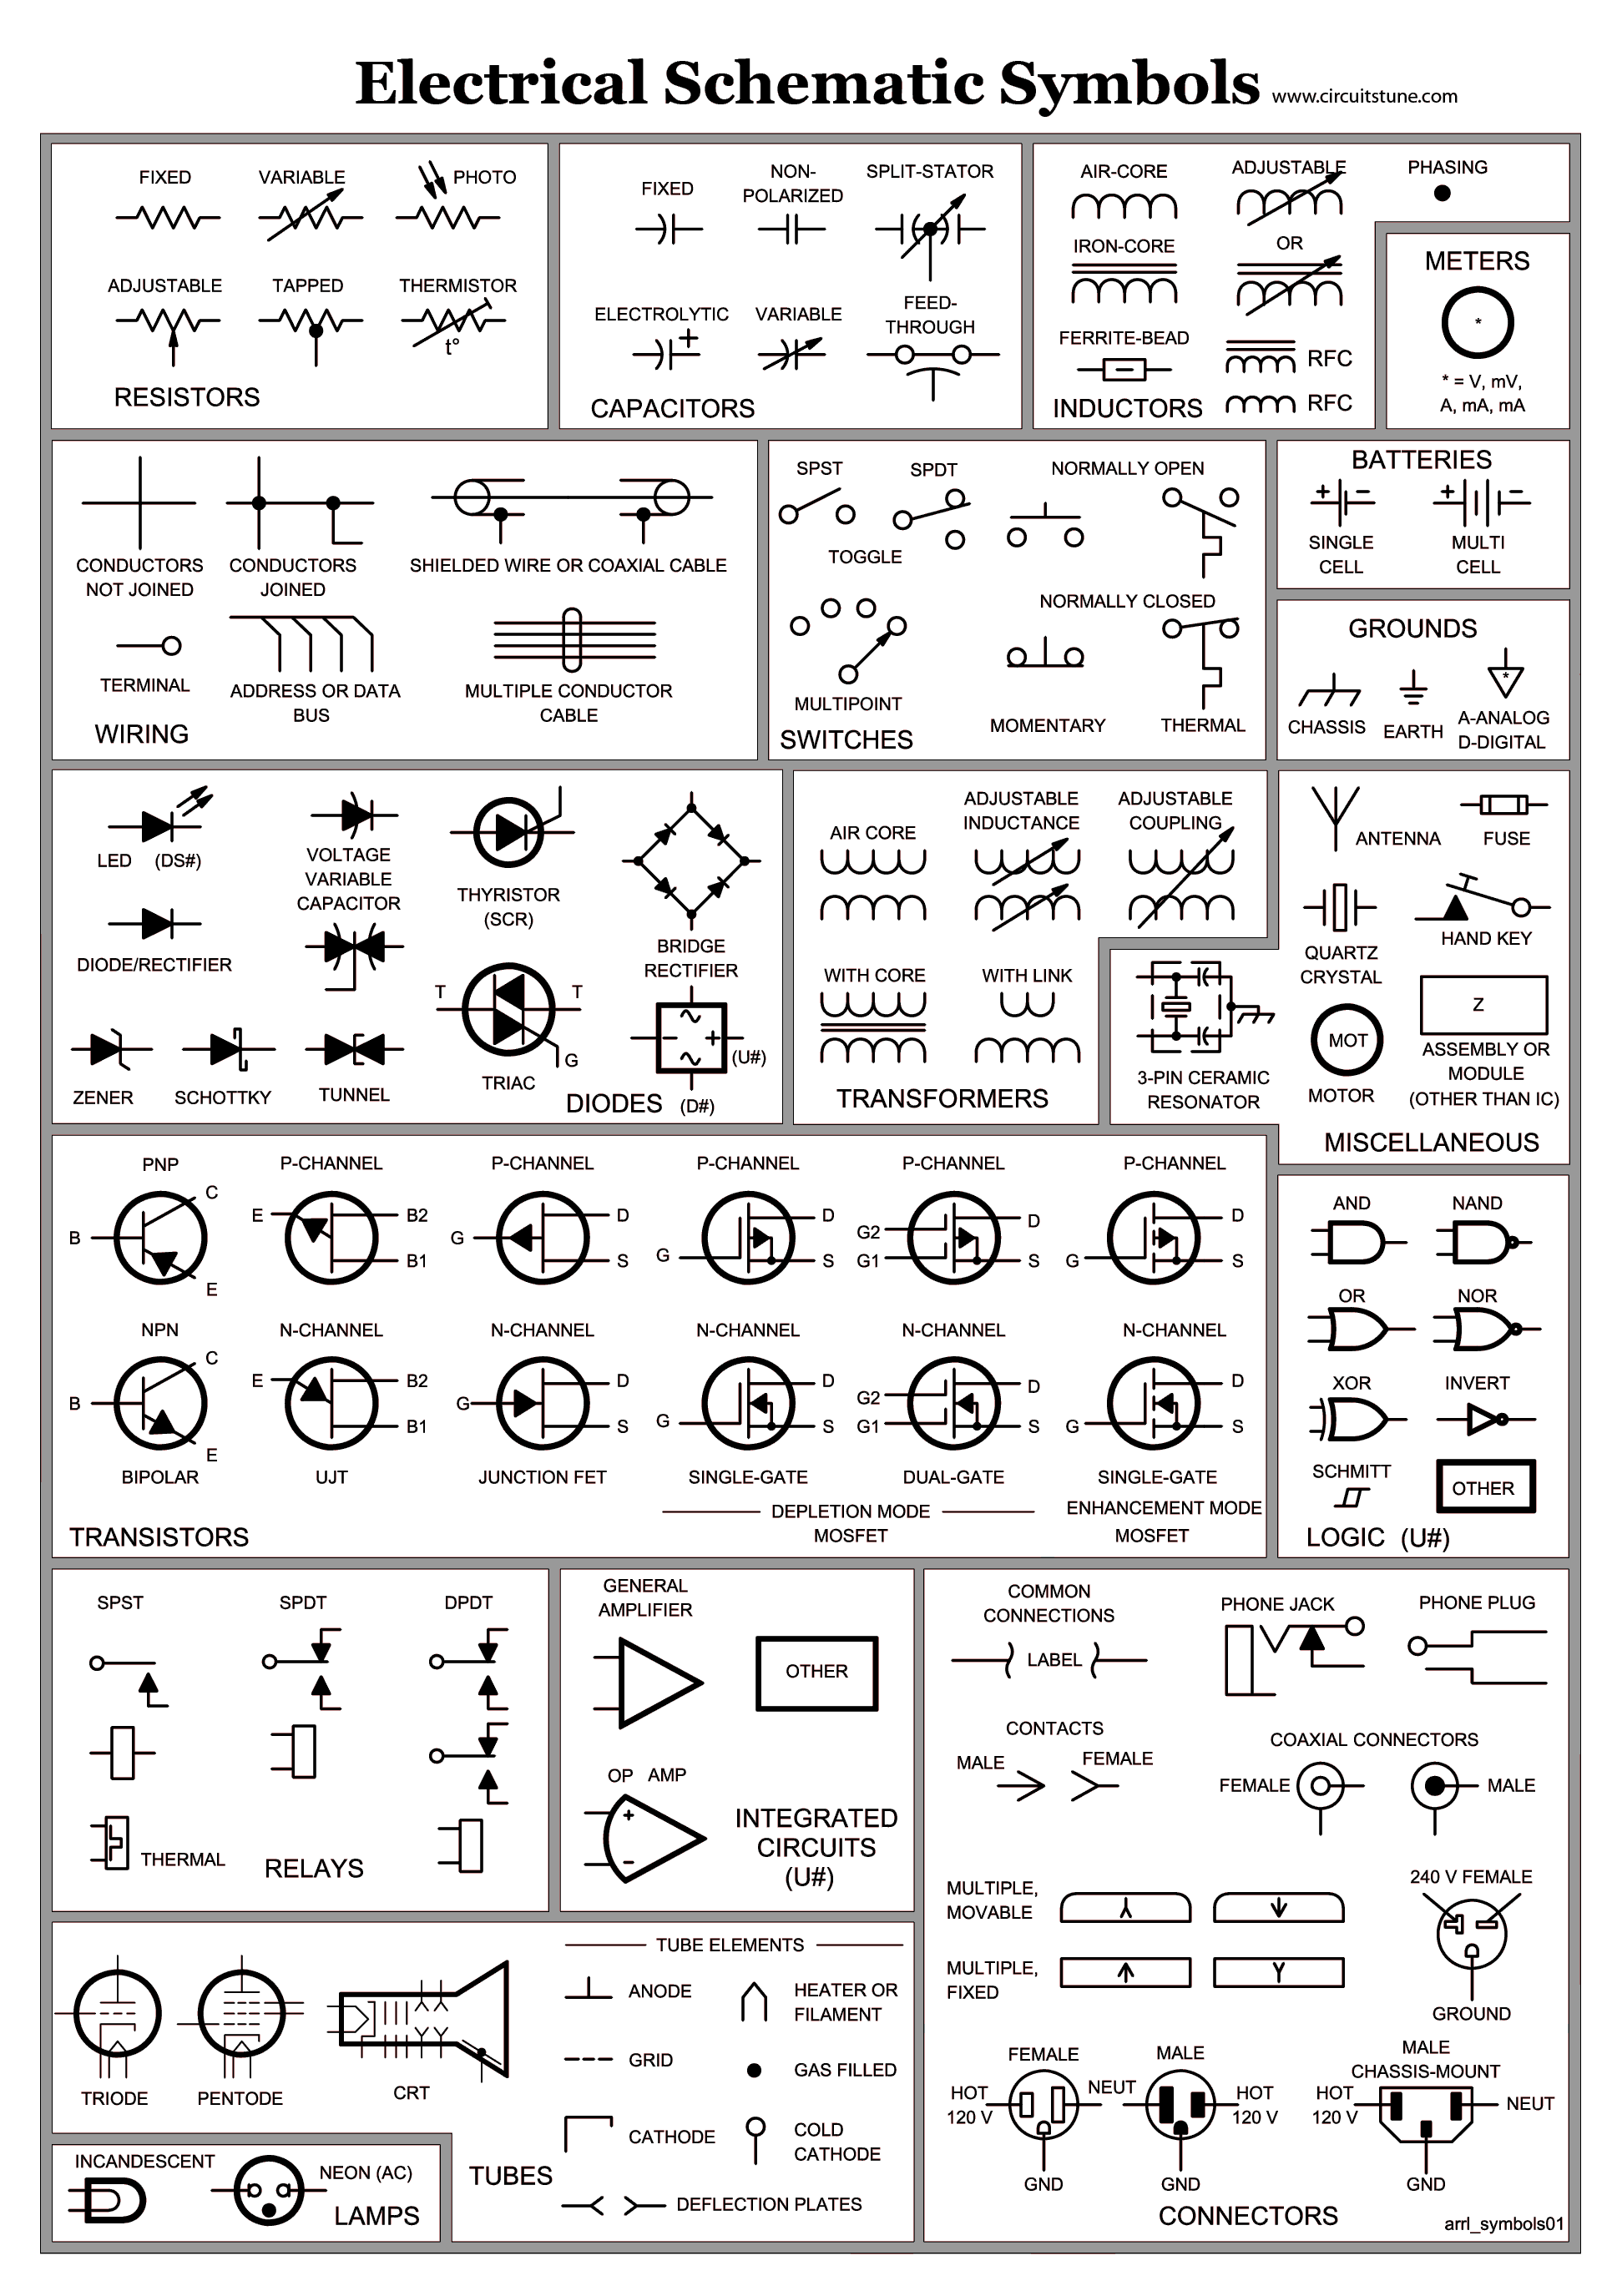 electrical schematic symbols wire diagram symbols automotive wiring rh pinterest com circuit diagrams symbols and meanings circuit drawing symbols